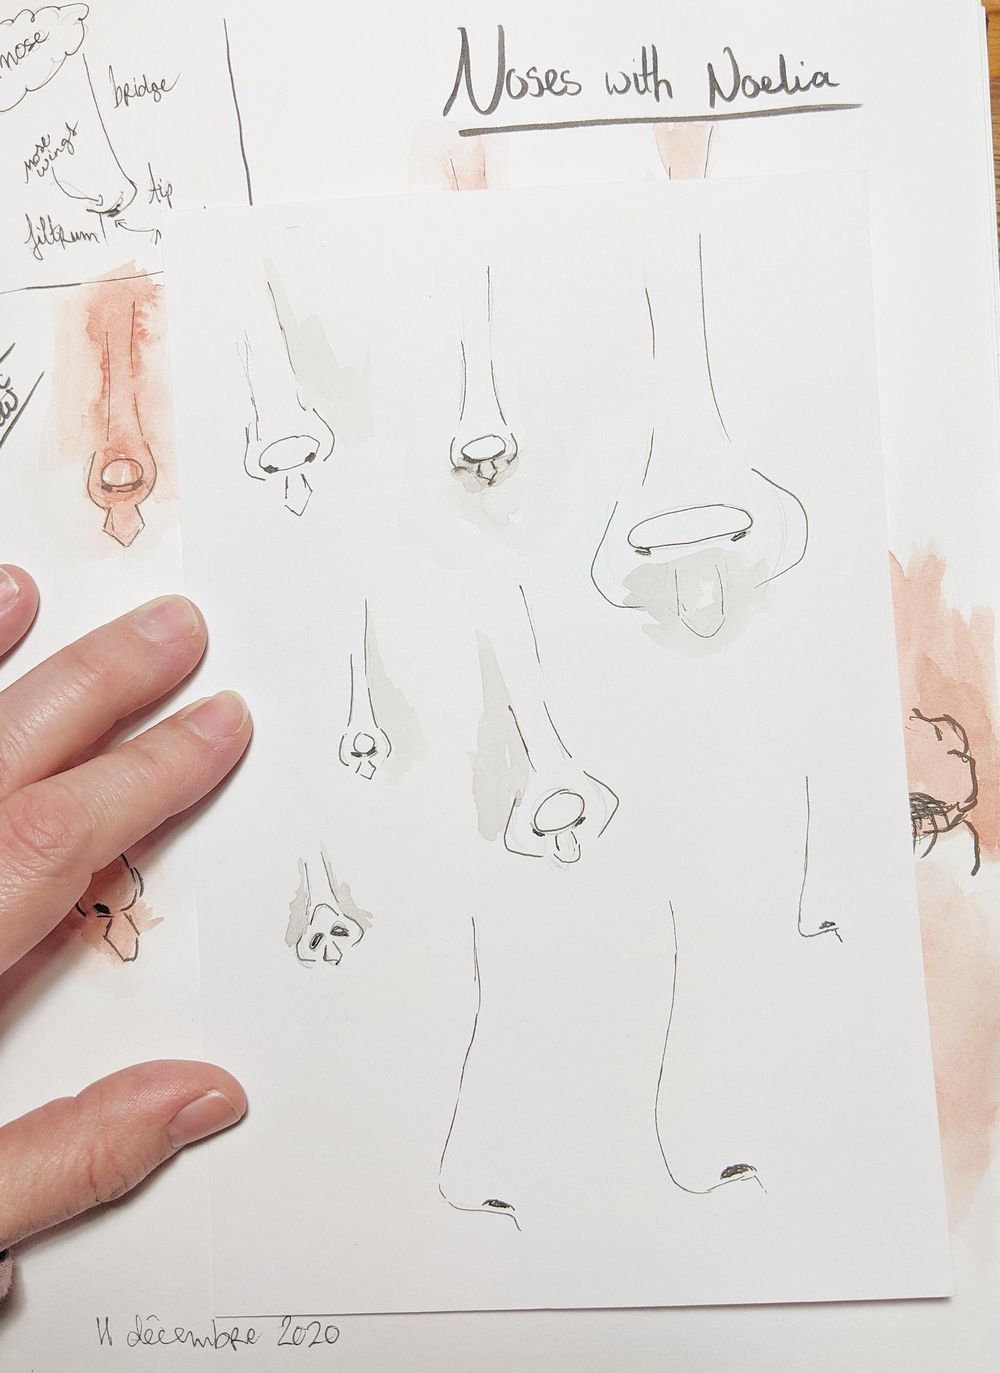 Drawing noses with Noelia - image 1 - student project